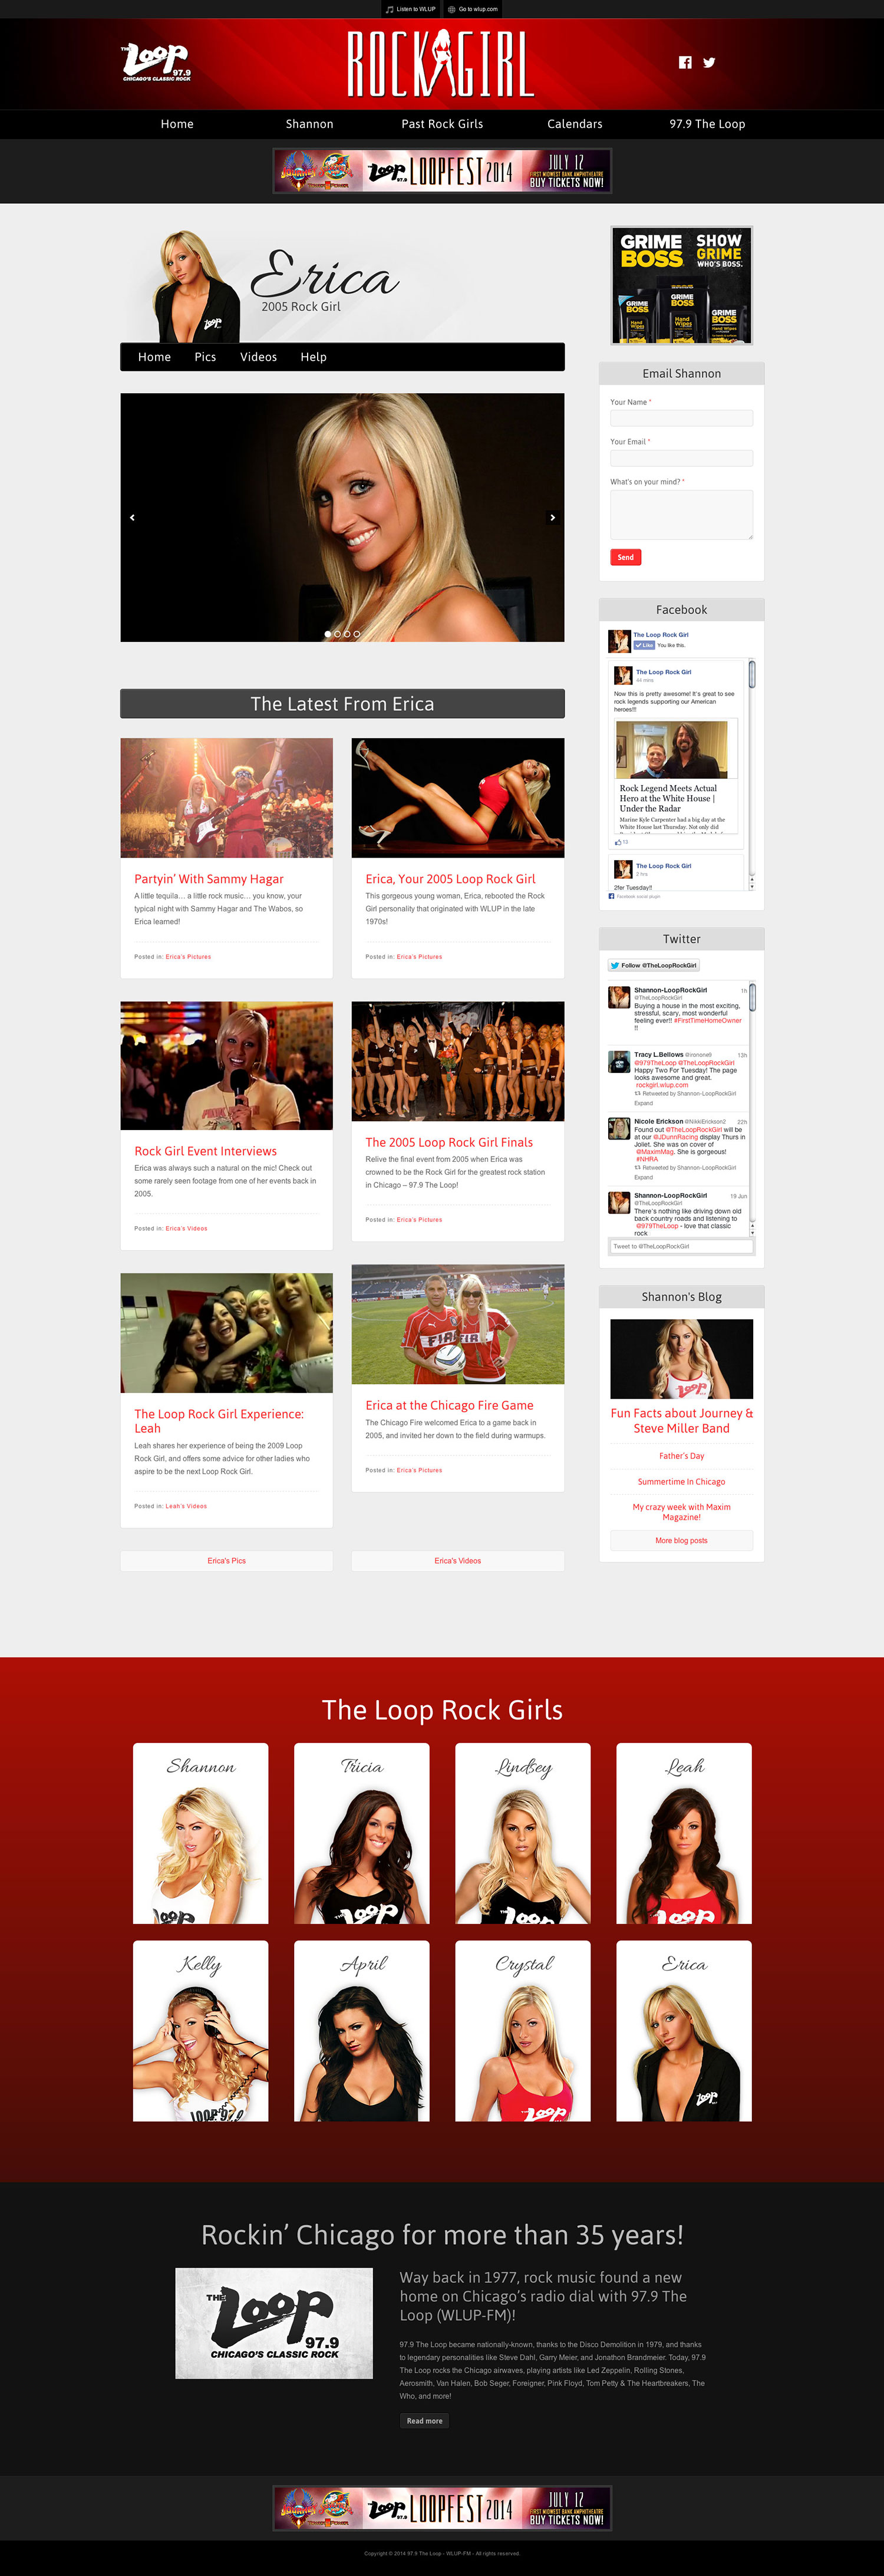 The Loop Rock Girl - Erica Page - Browser View